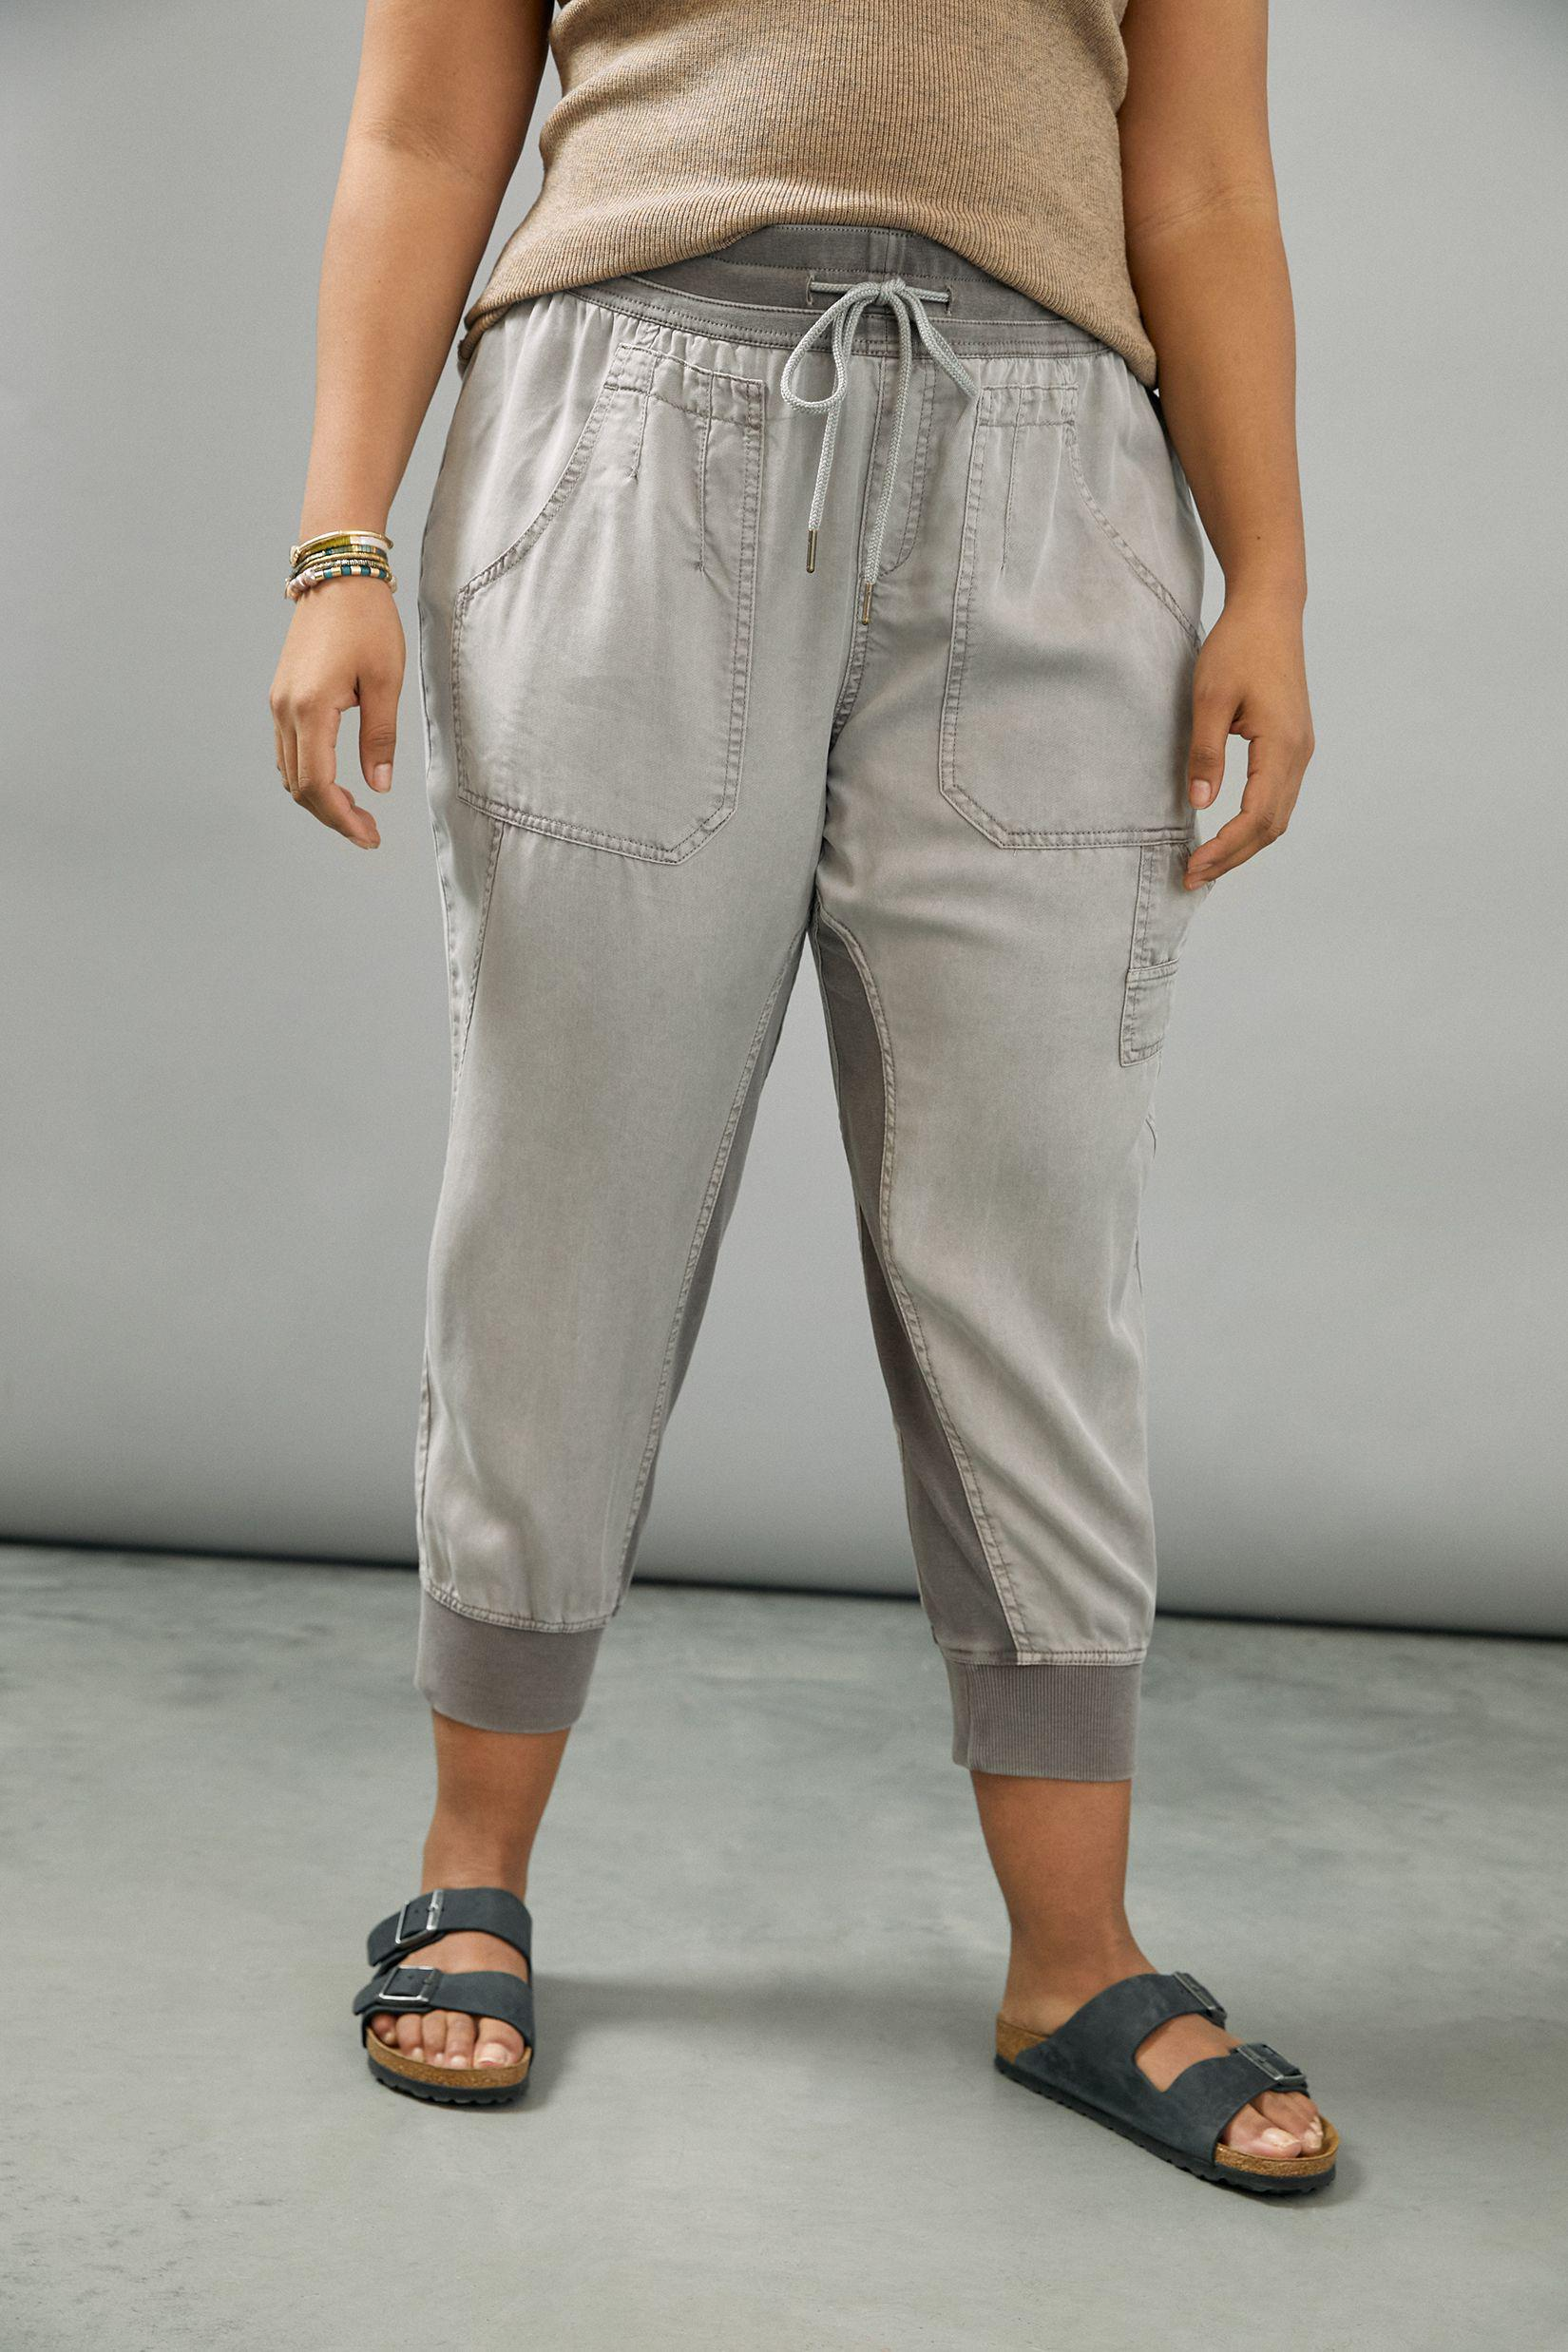 The Nomad Joggers 6